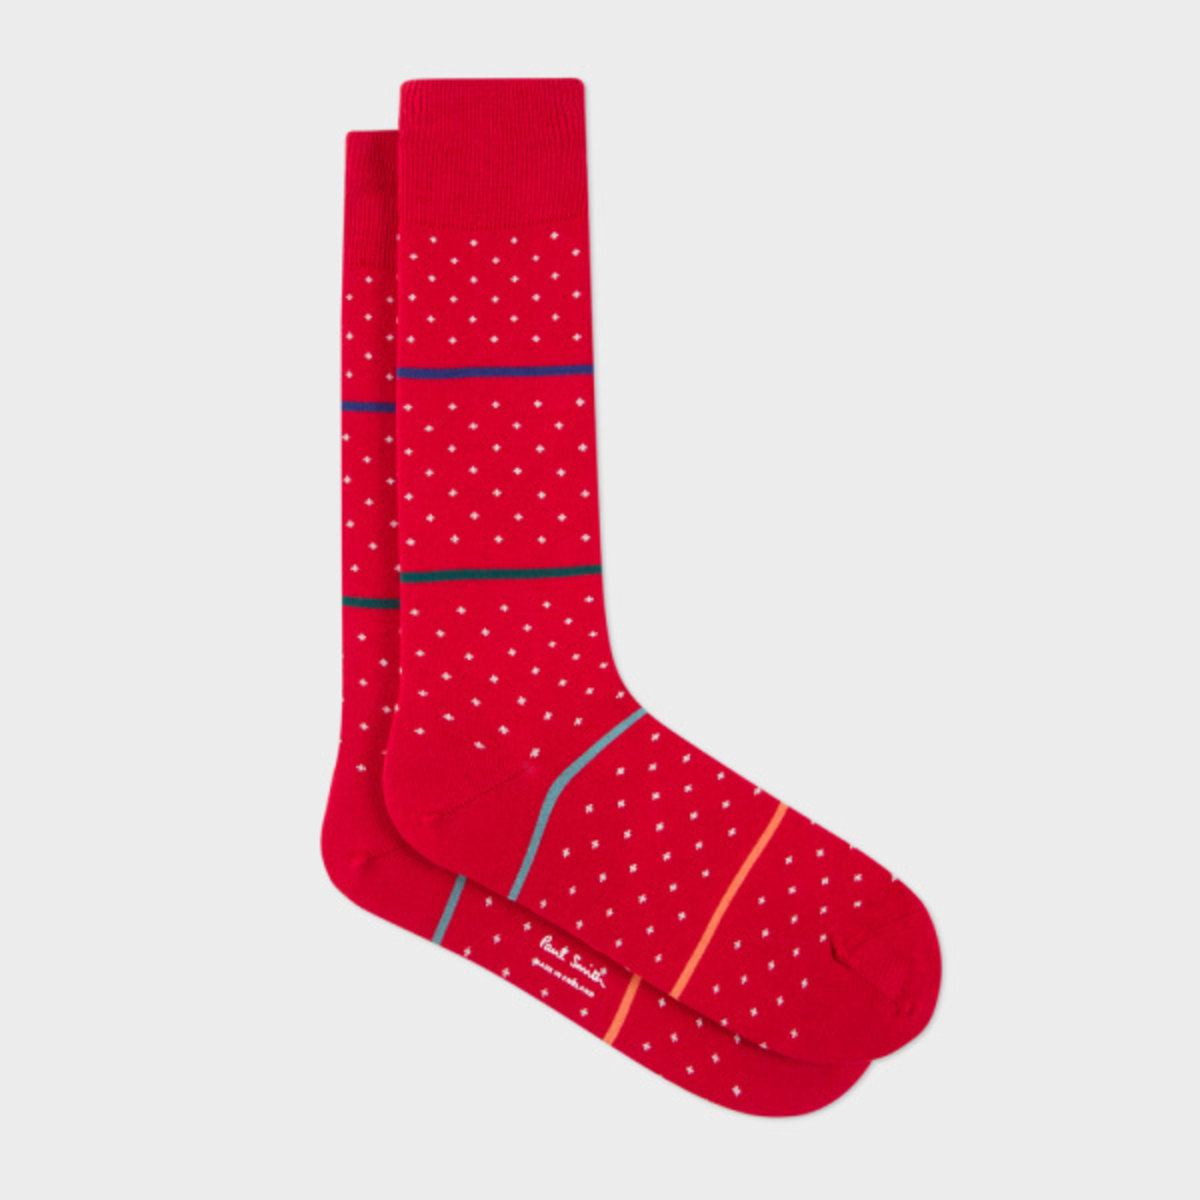 Men' s Red Spot Socks [Parallel Imports Product]